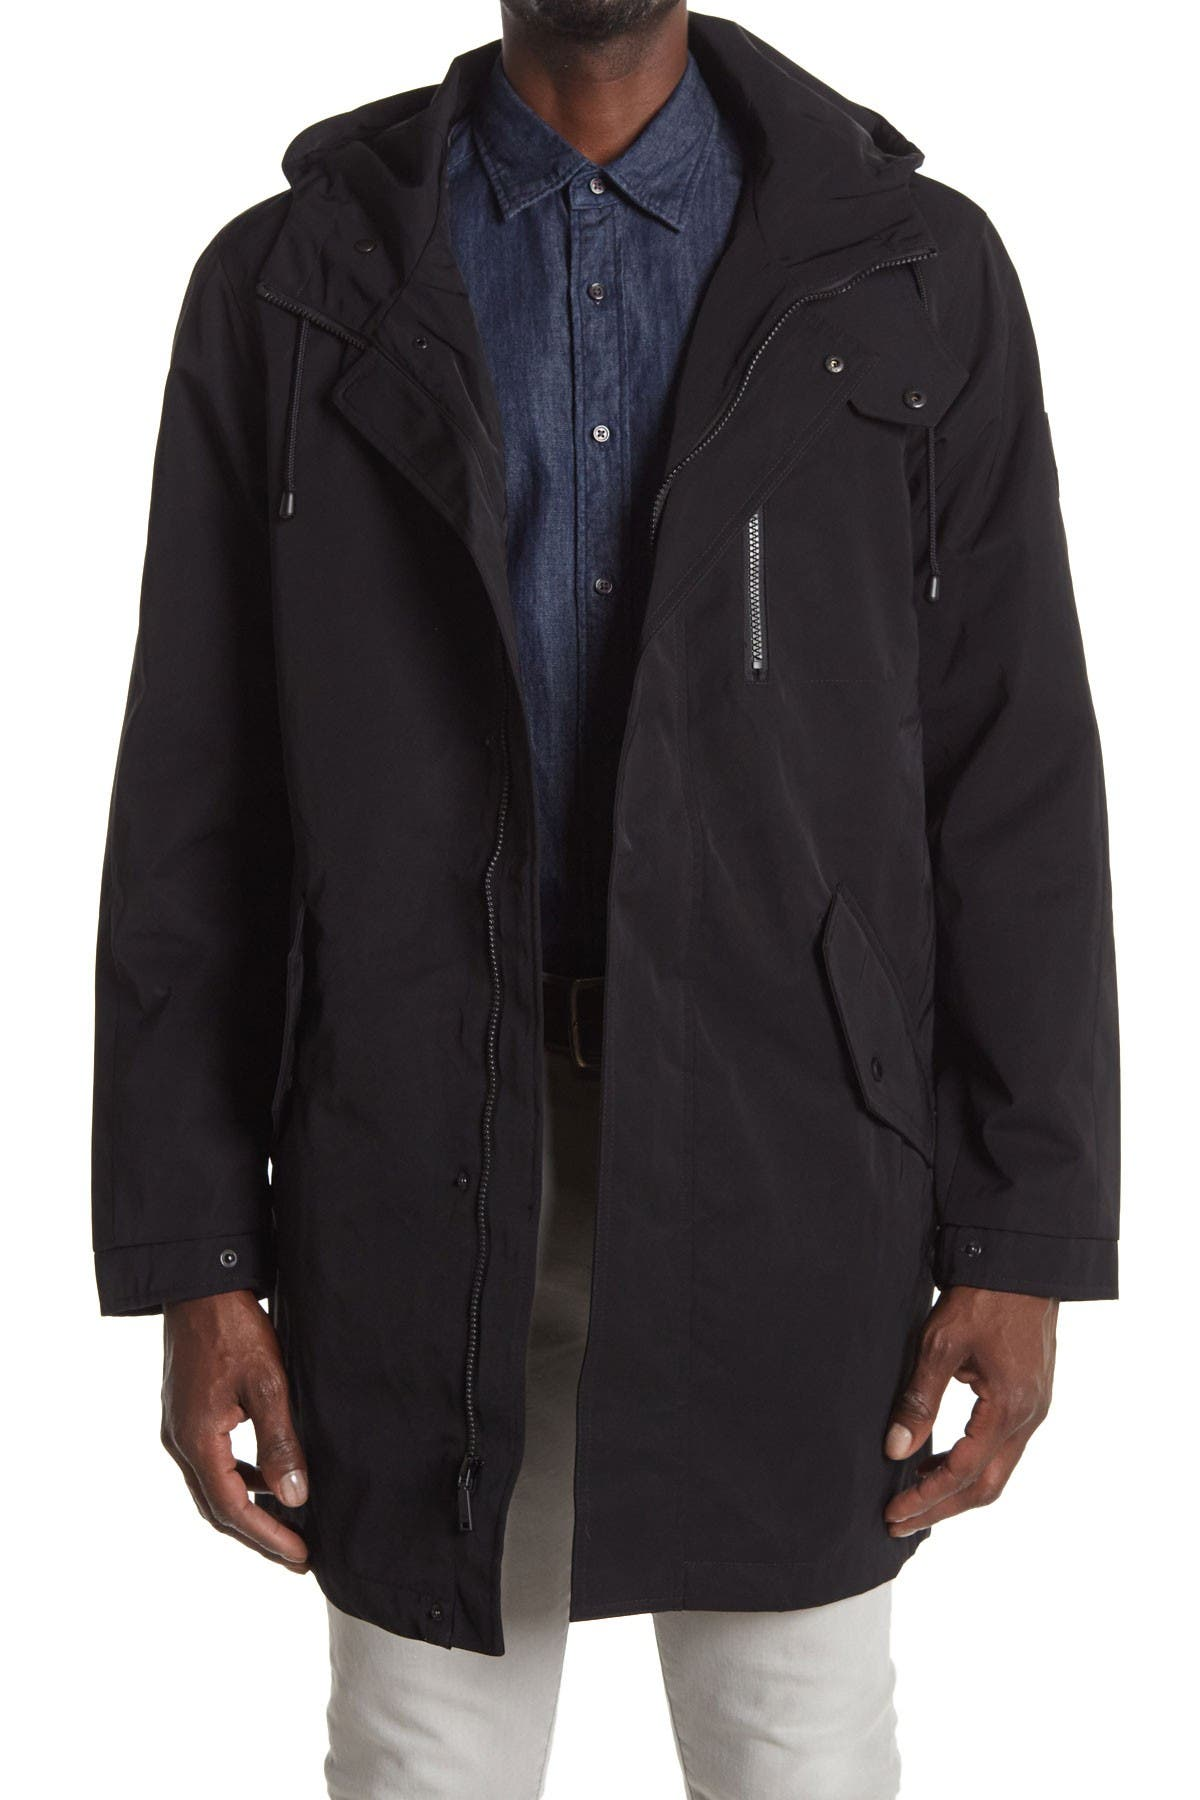 Image of Vince Camuto Hooded Anorak Jacket